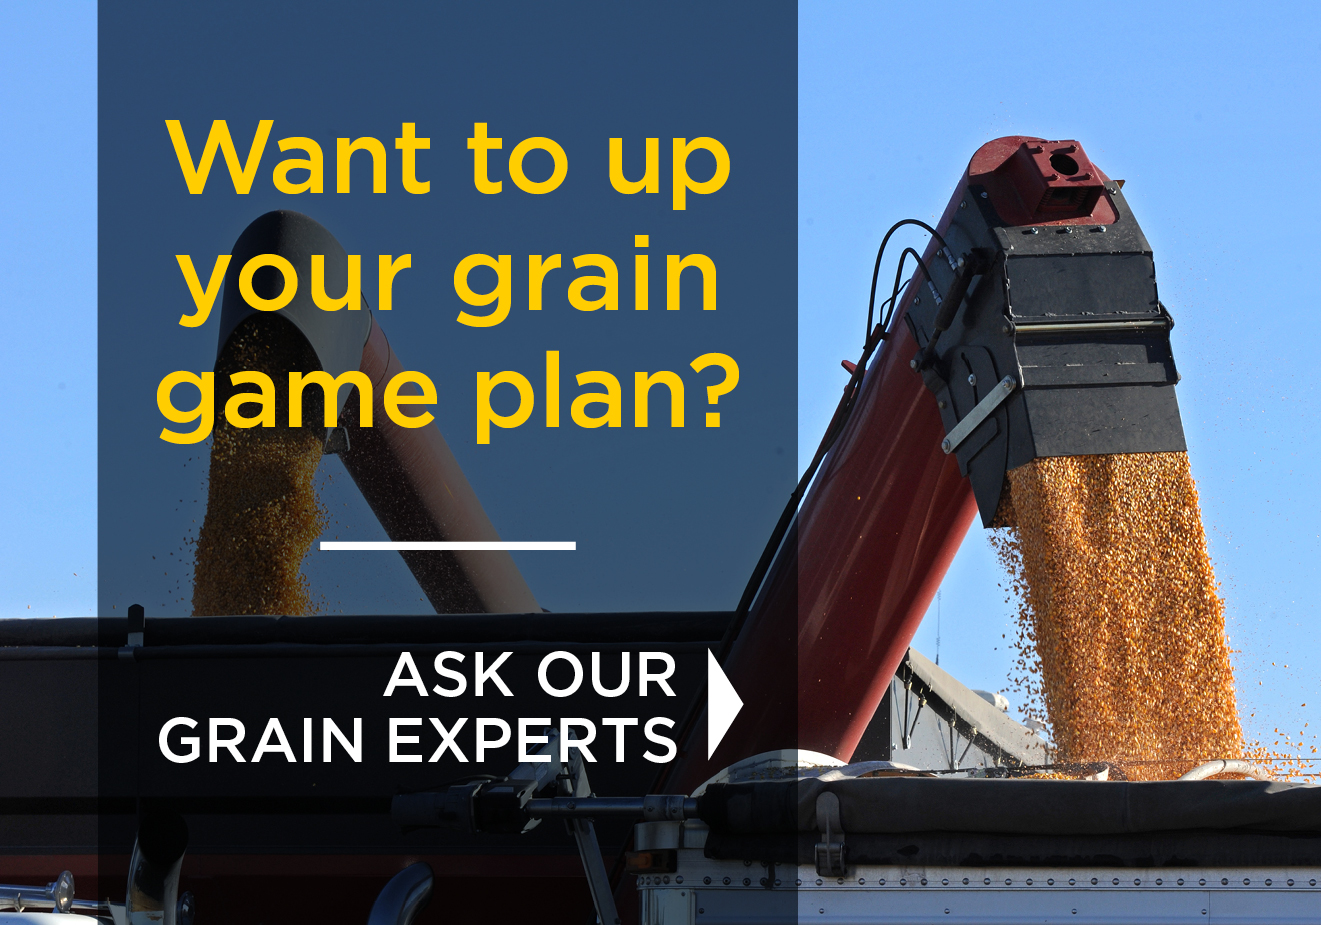 Want to up your grain game plan? Ask our grain experts.